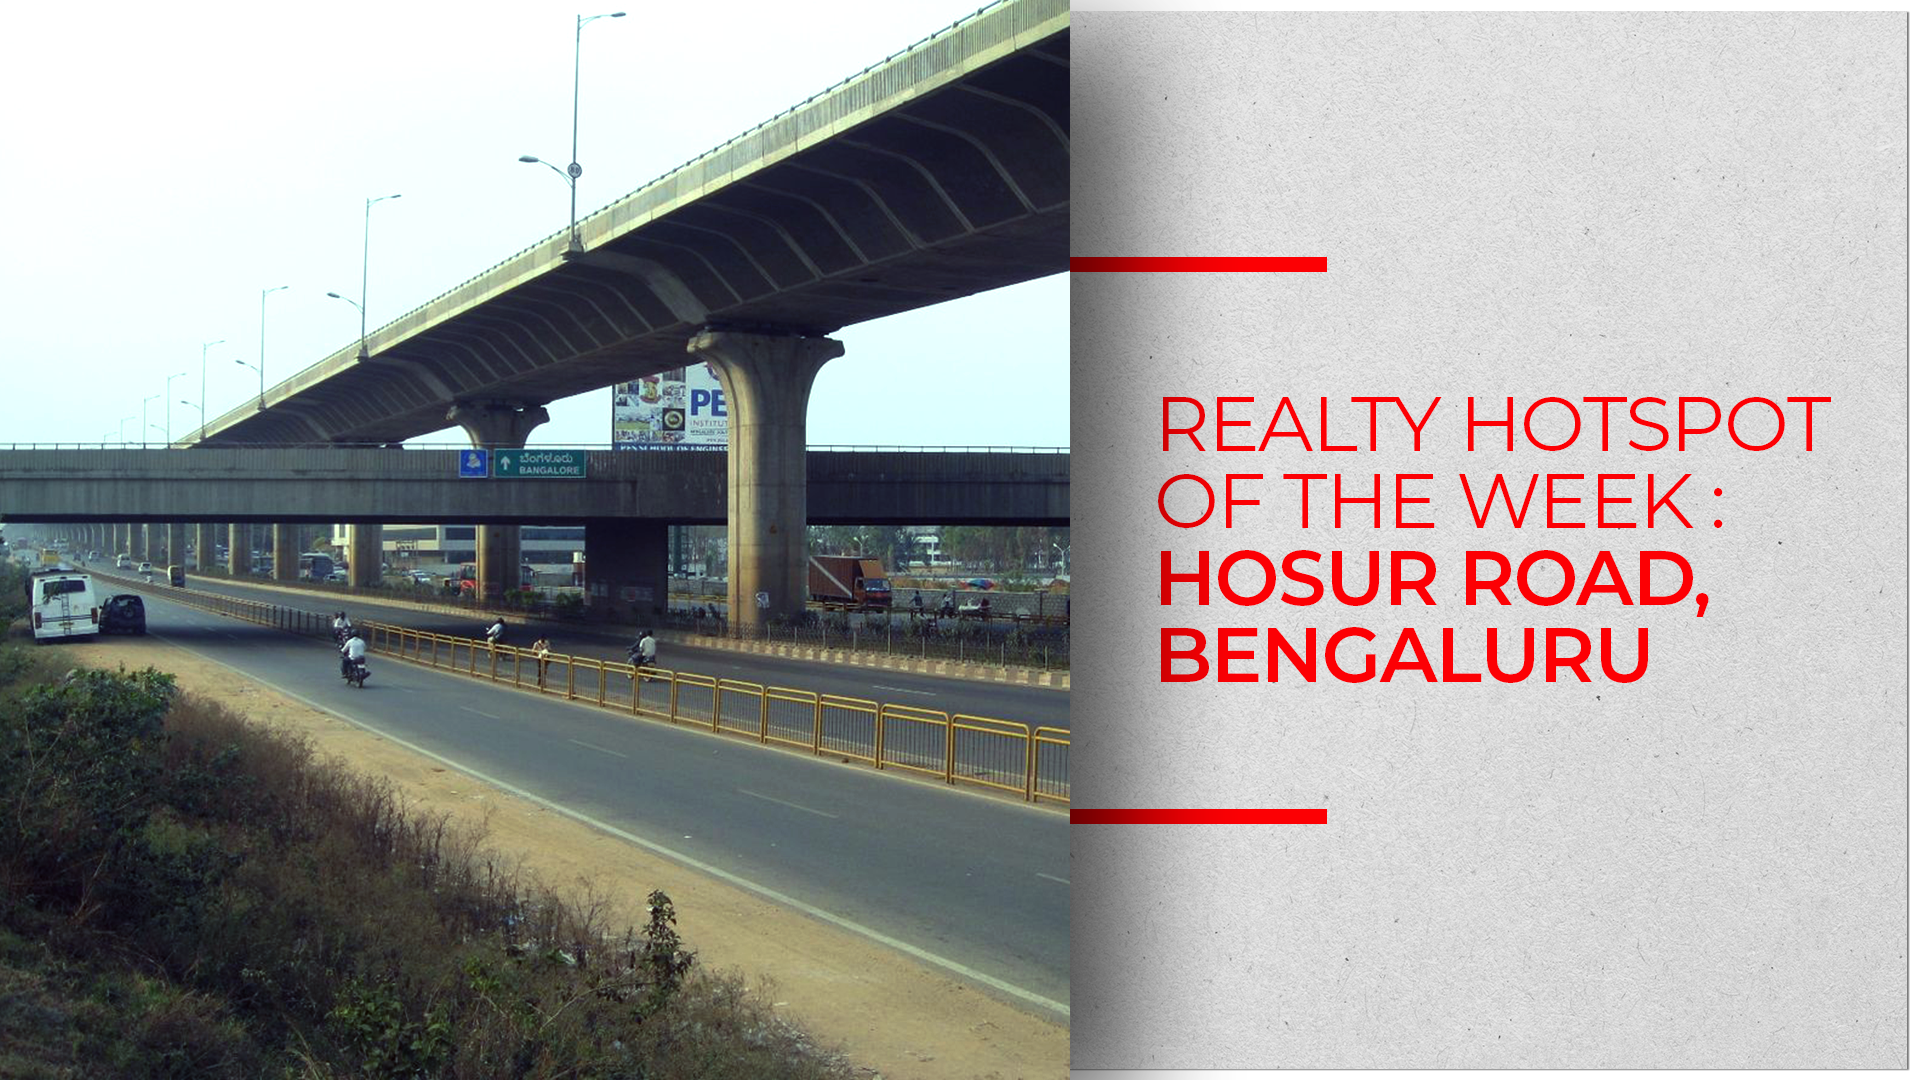 Realty Hotspot Of The Week: Hosur Road, Bengaluru